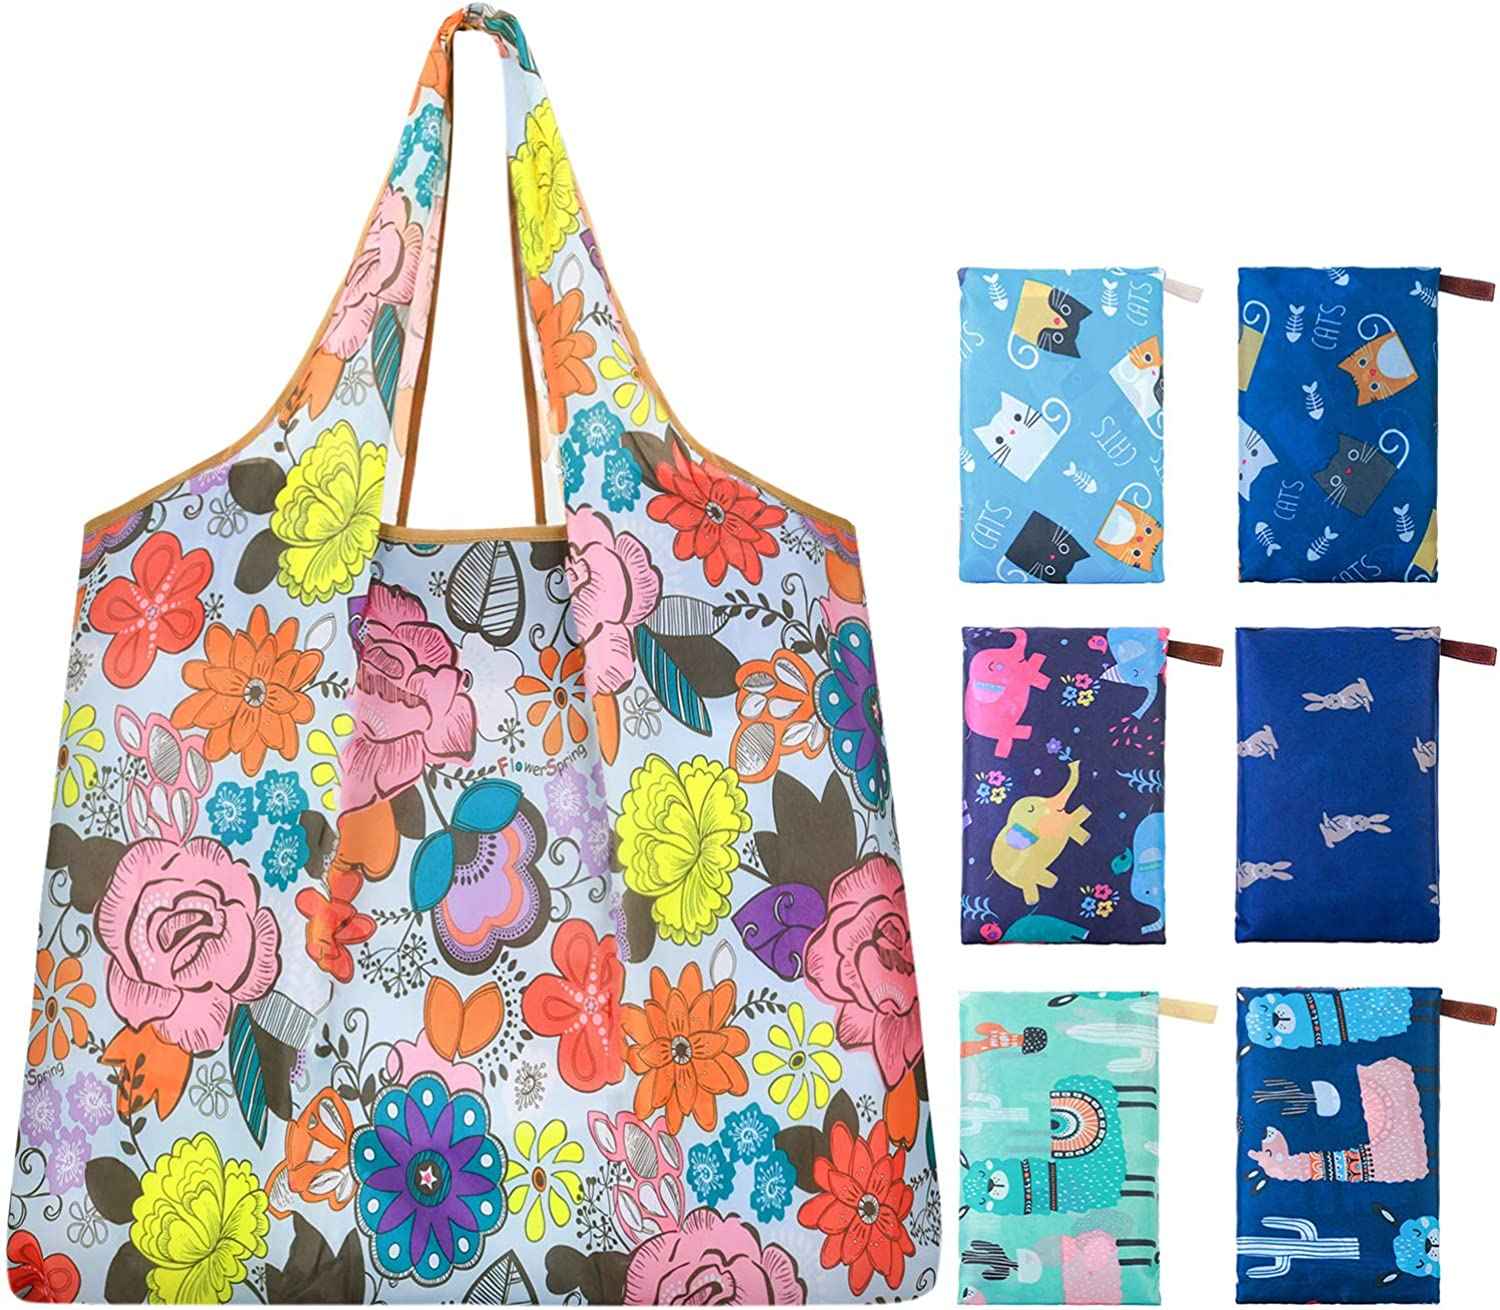 Reusable shopping bags for grocery handles Flowerful Bags Foldable washable